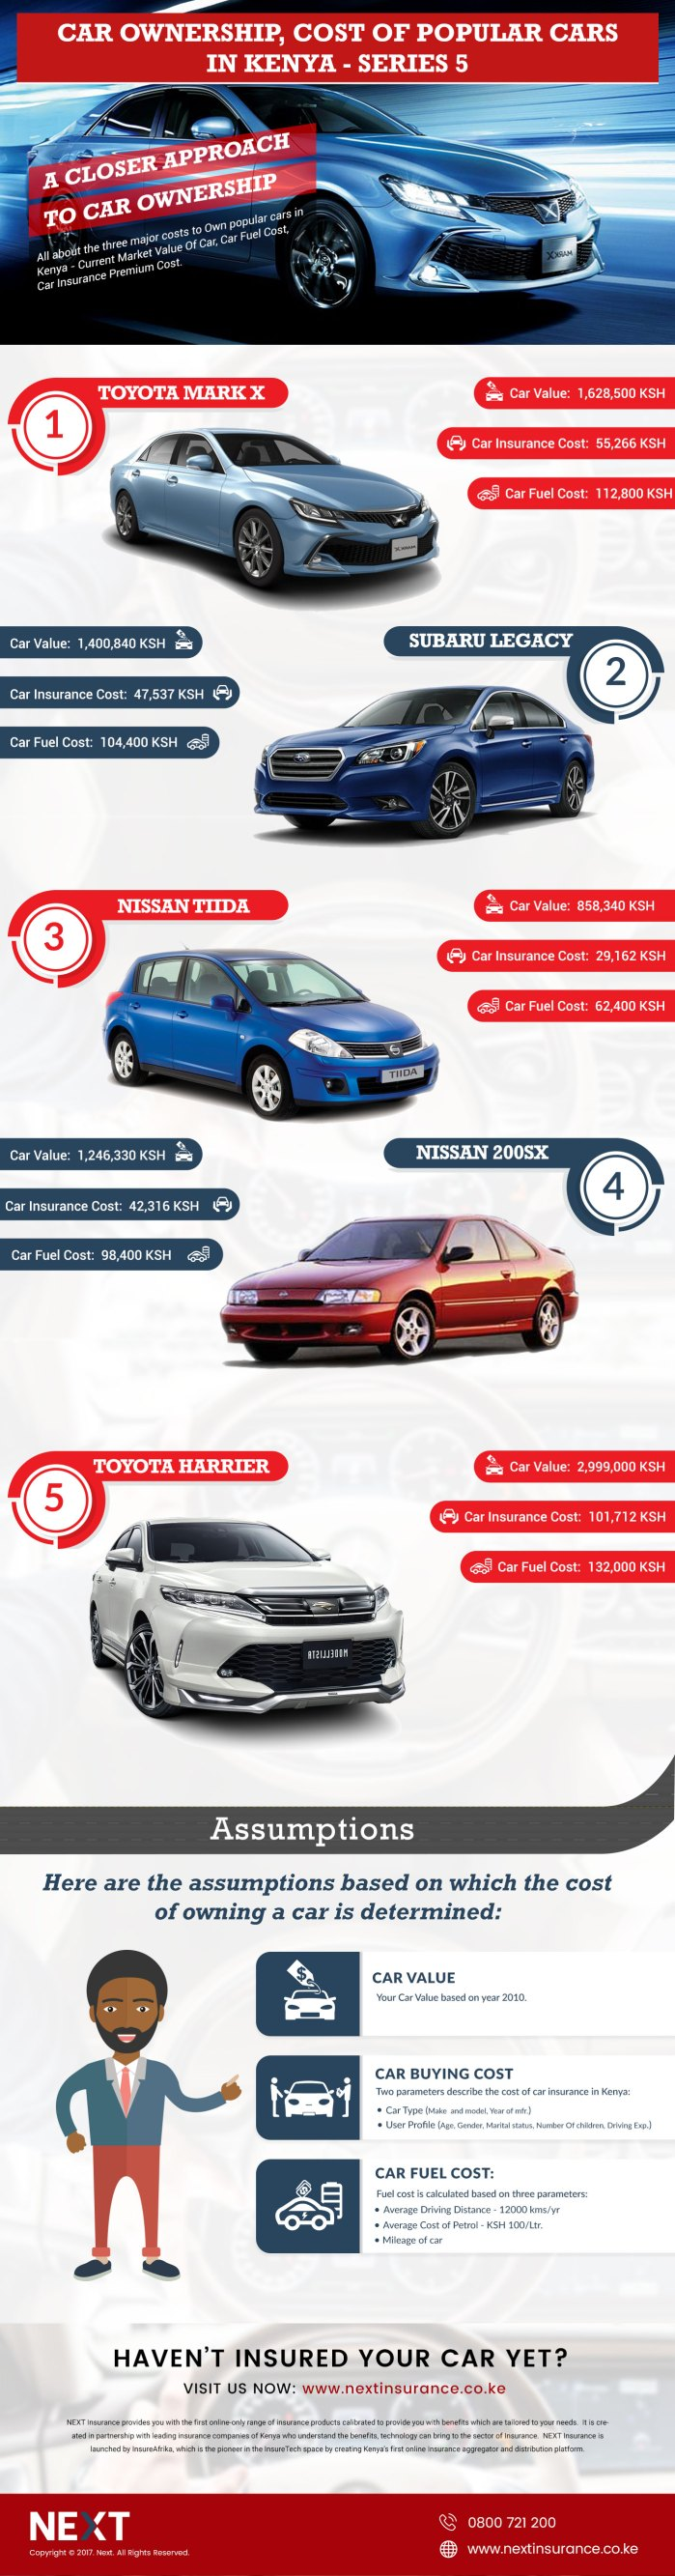 Car Ownership Cost, Top 5 Cars in Kenya Infographic - Series 5